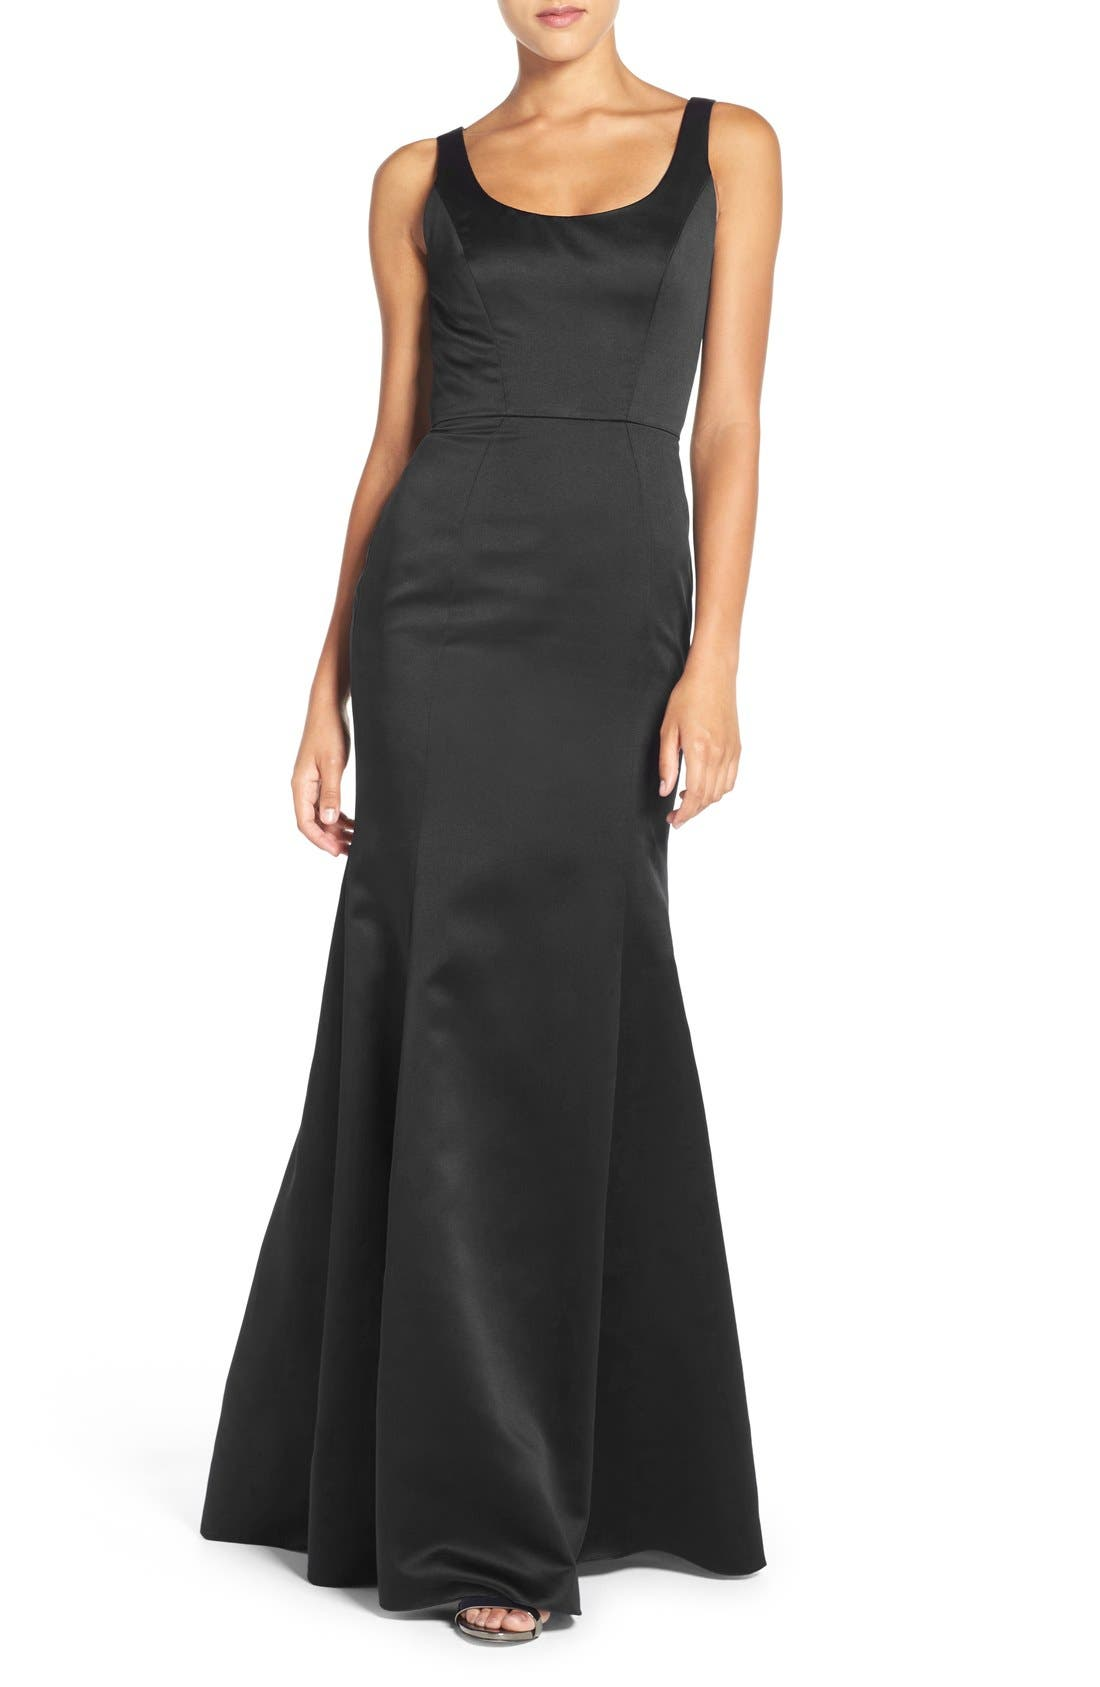 HAYLEY PAIGE OCCASIONS Back Cutout Scoop Neck Satin